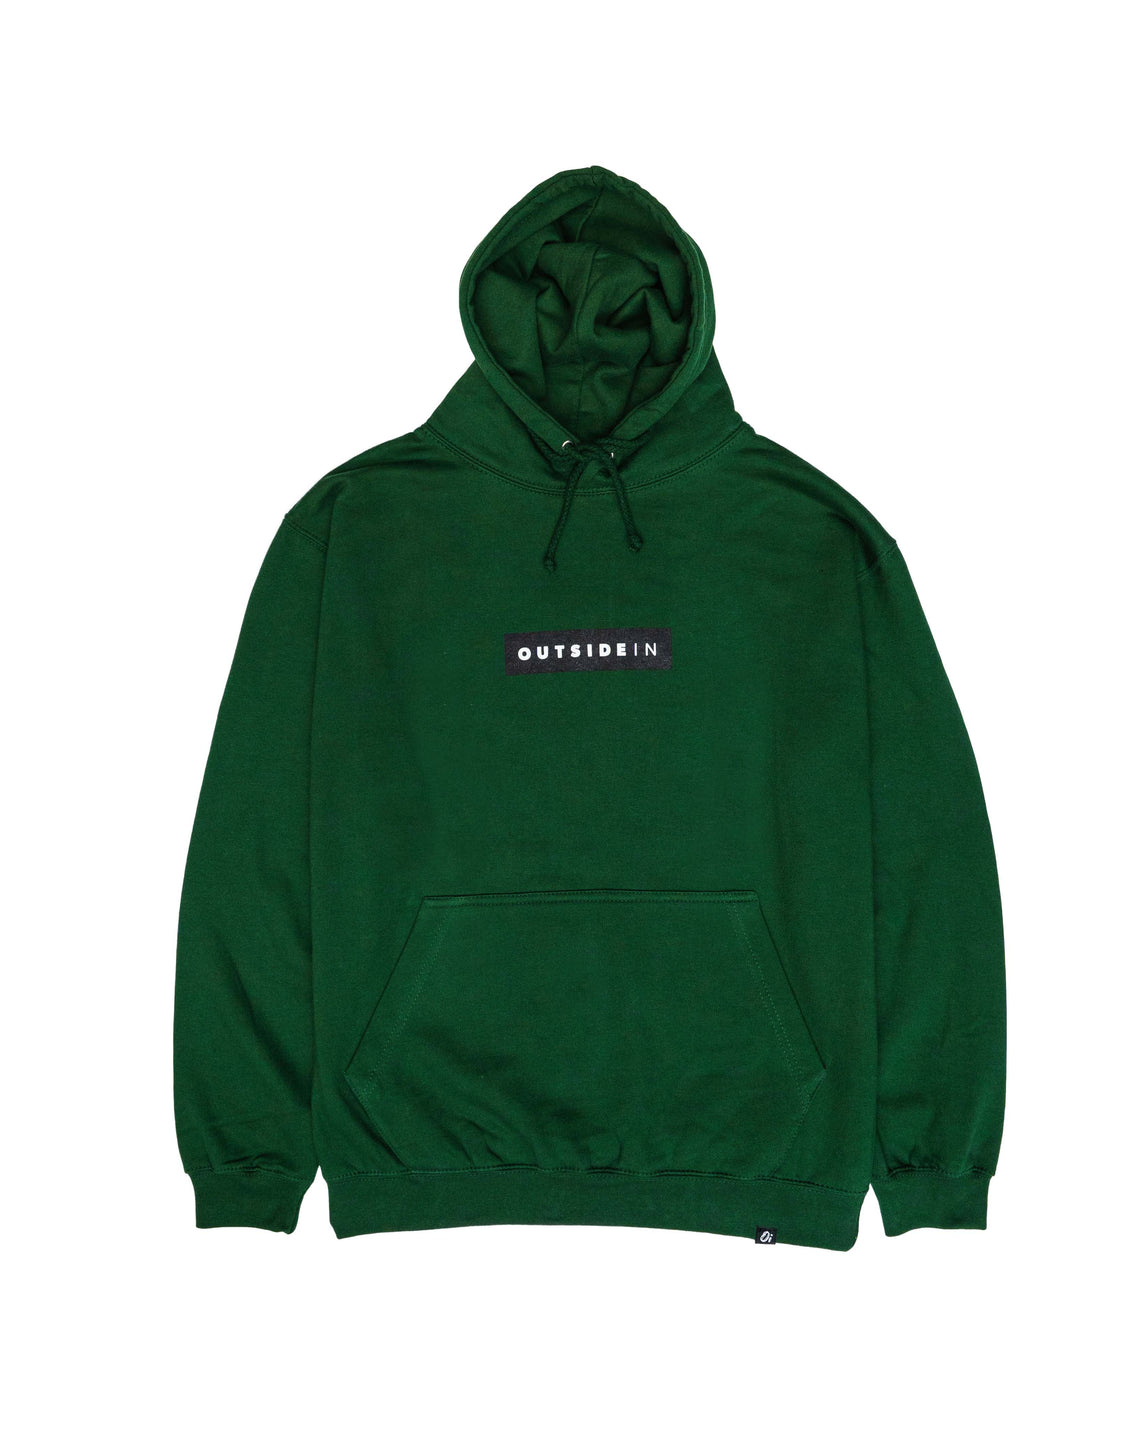 Essential Green Block Hoodie - OutsideIn